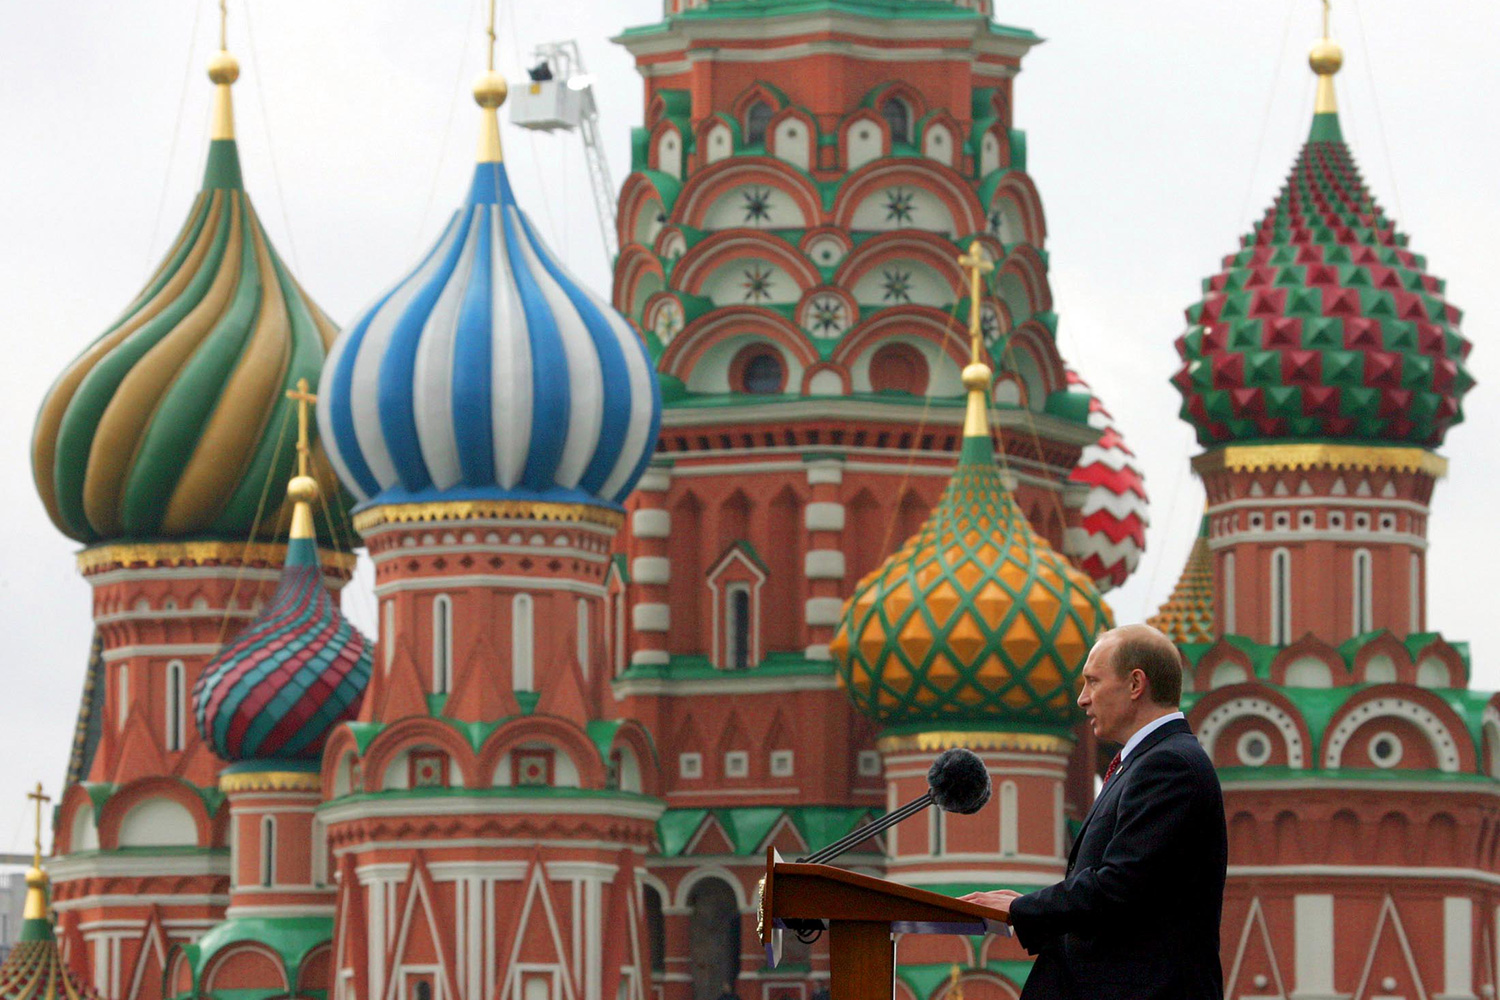 The photo shows Putin in profile in front of St.Basil's Cathedral in Red speaking at a podium.